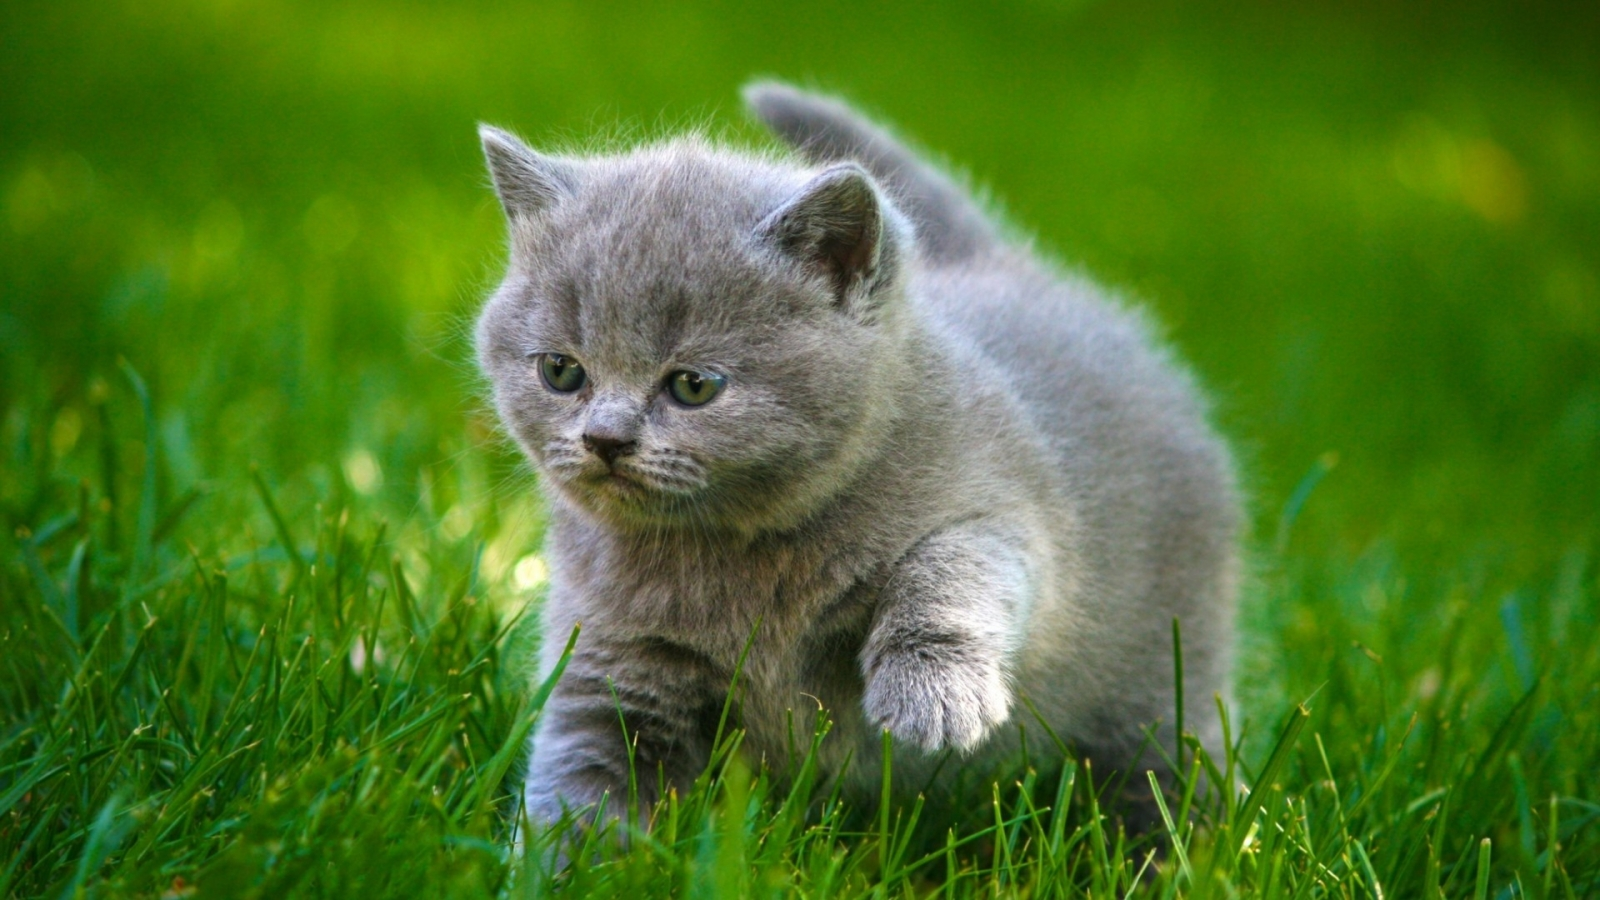 Grey Little Kitty for 1600 x 900 HDTV resolution